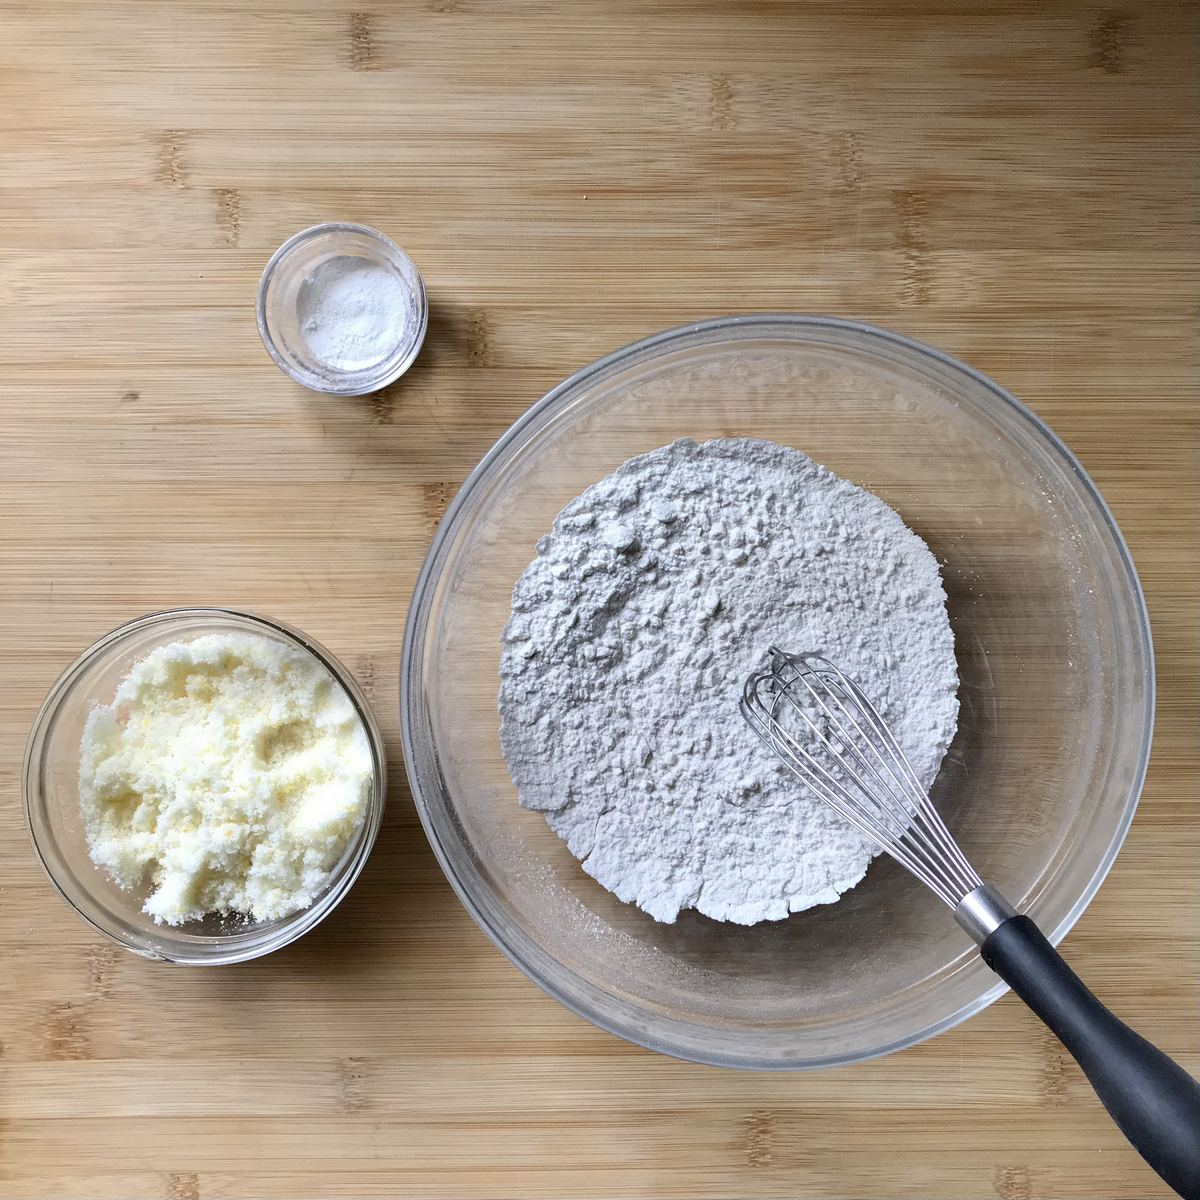 The dry ingredients to make ricotta cookies on a wooden board.